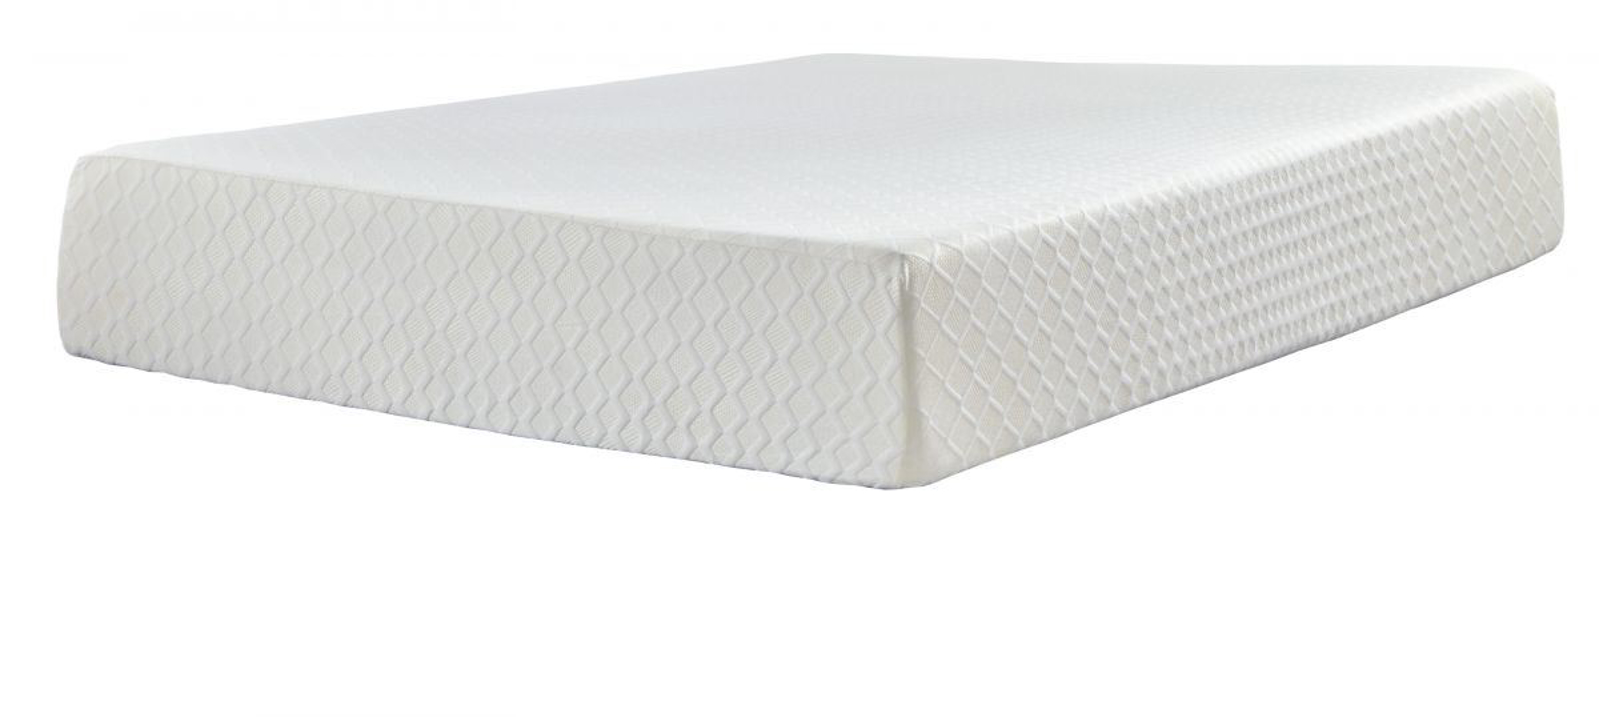 Picture of Chime 12in Foam Queen Mattress